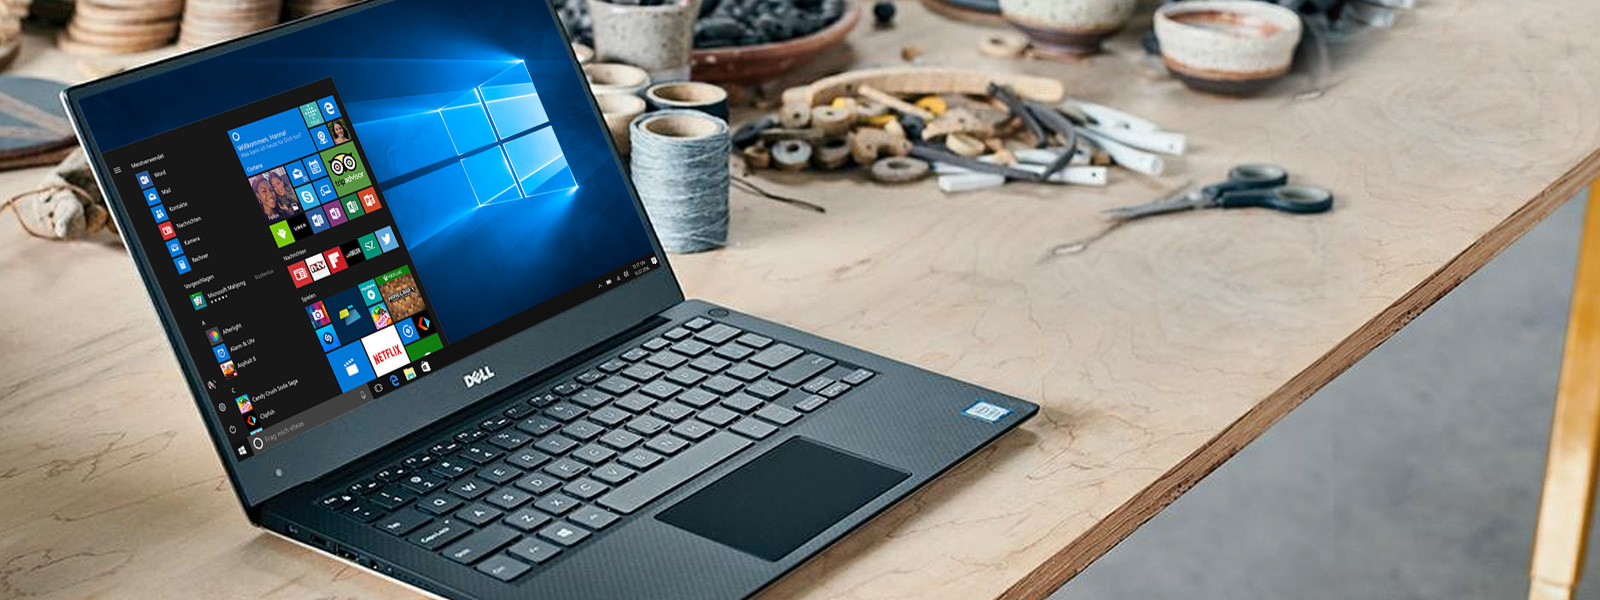 Dell XPS 13 mit Windows 10-Startbildschirm